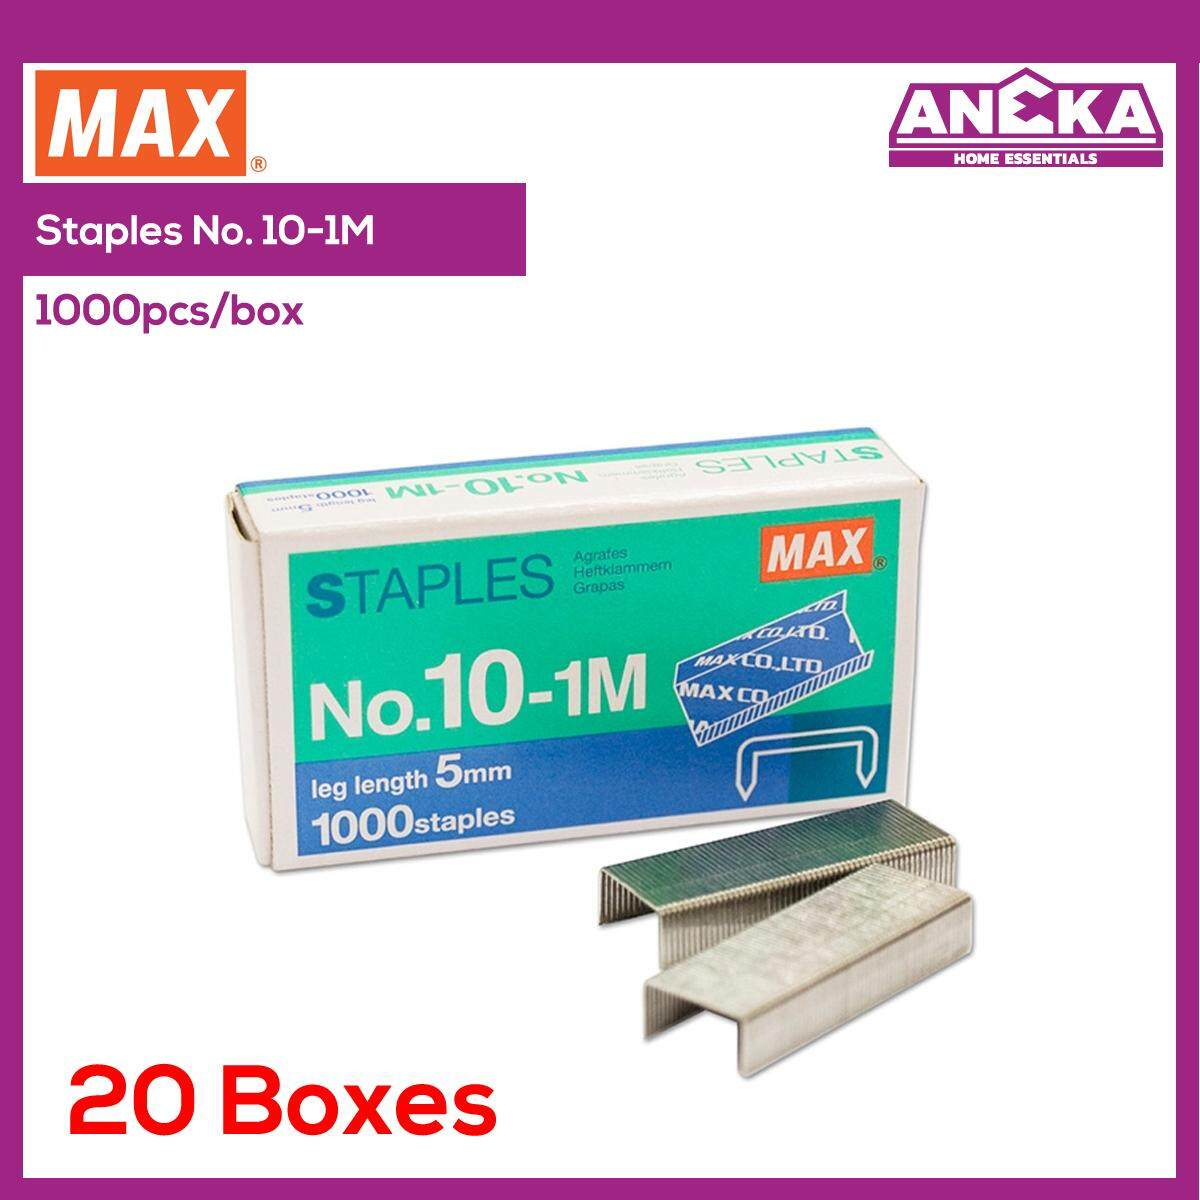 Max Staples Bullet No.10-1m (20 Boxes) Ms90126 By Aneka Home Essentials.